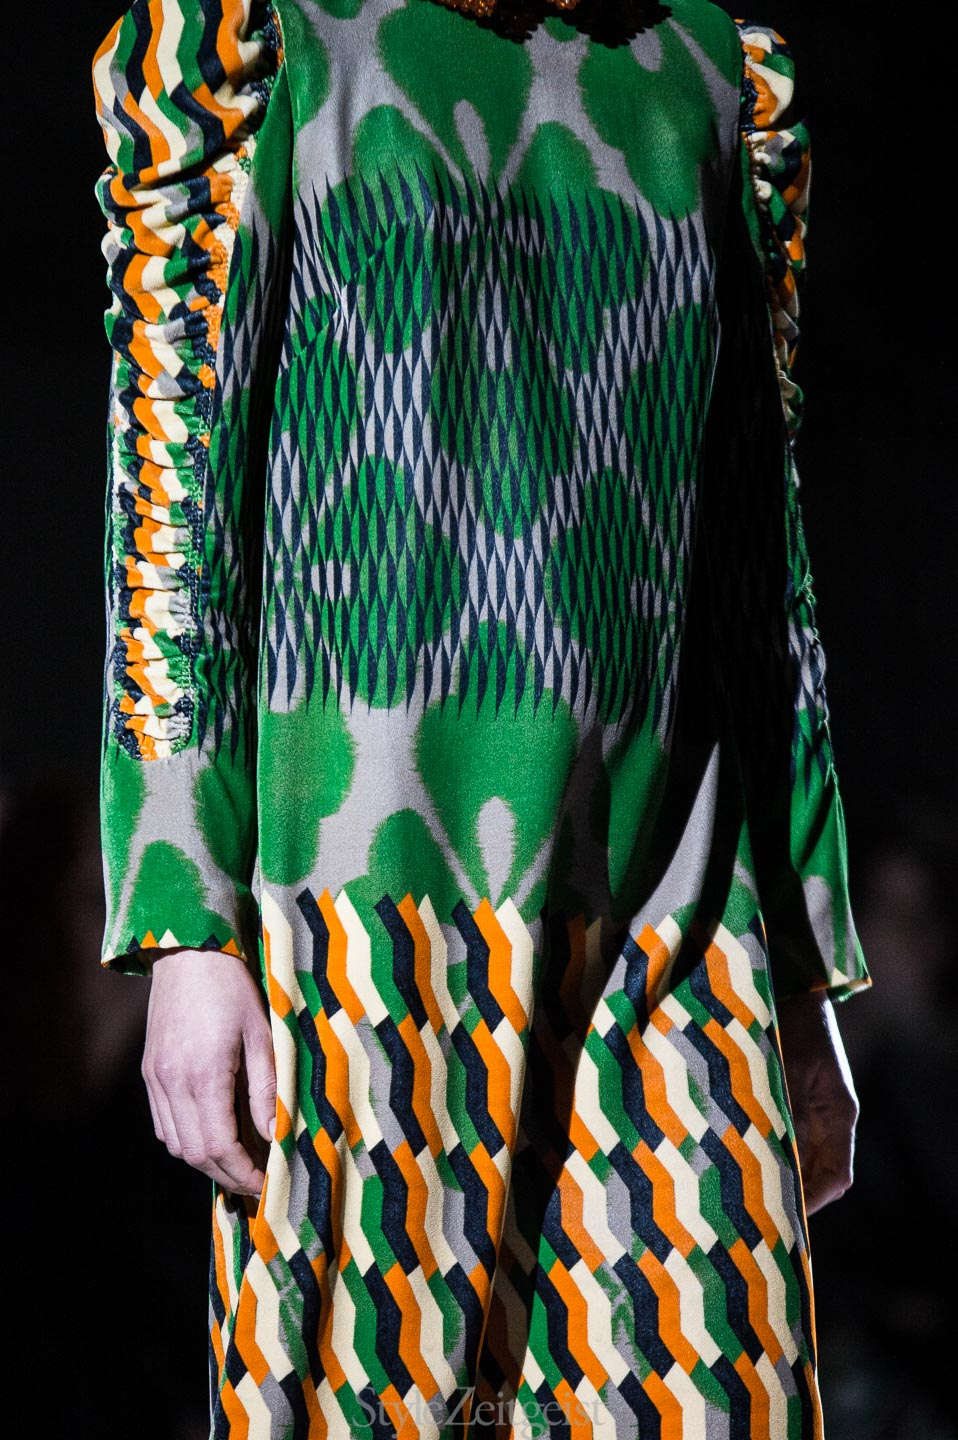 StyleZeitgeist Dries Van Noten F/W17 Women's - Paris Fashion    StyleZeitgeist Dries Van Noten F/W17 Women's - Paris Fashion    StyleZeitgeist Dries Van Noten F/W17 Women's - Paris Fashion    StyleZeitgeist Dries Van Noten F/W17 Women's - Paris Fashion    StyleZeitgeist Dries Van Noten F/W17 Women's - Paris Fashion